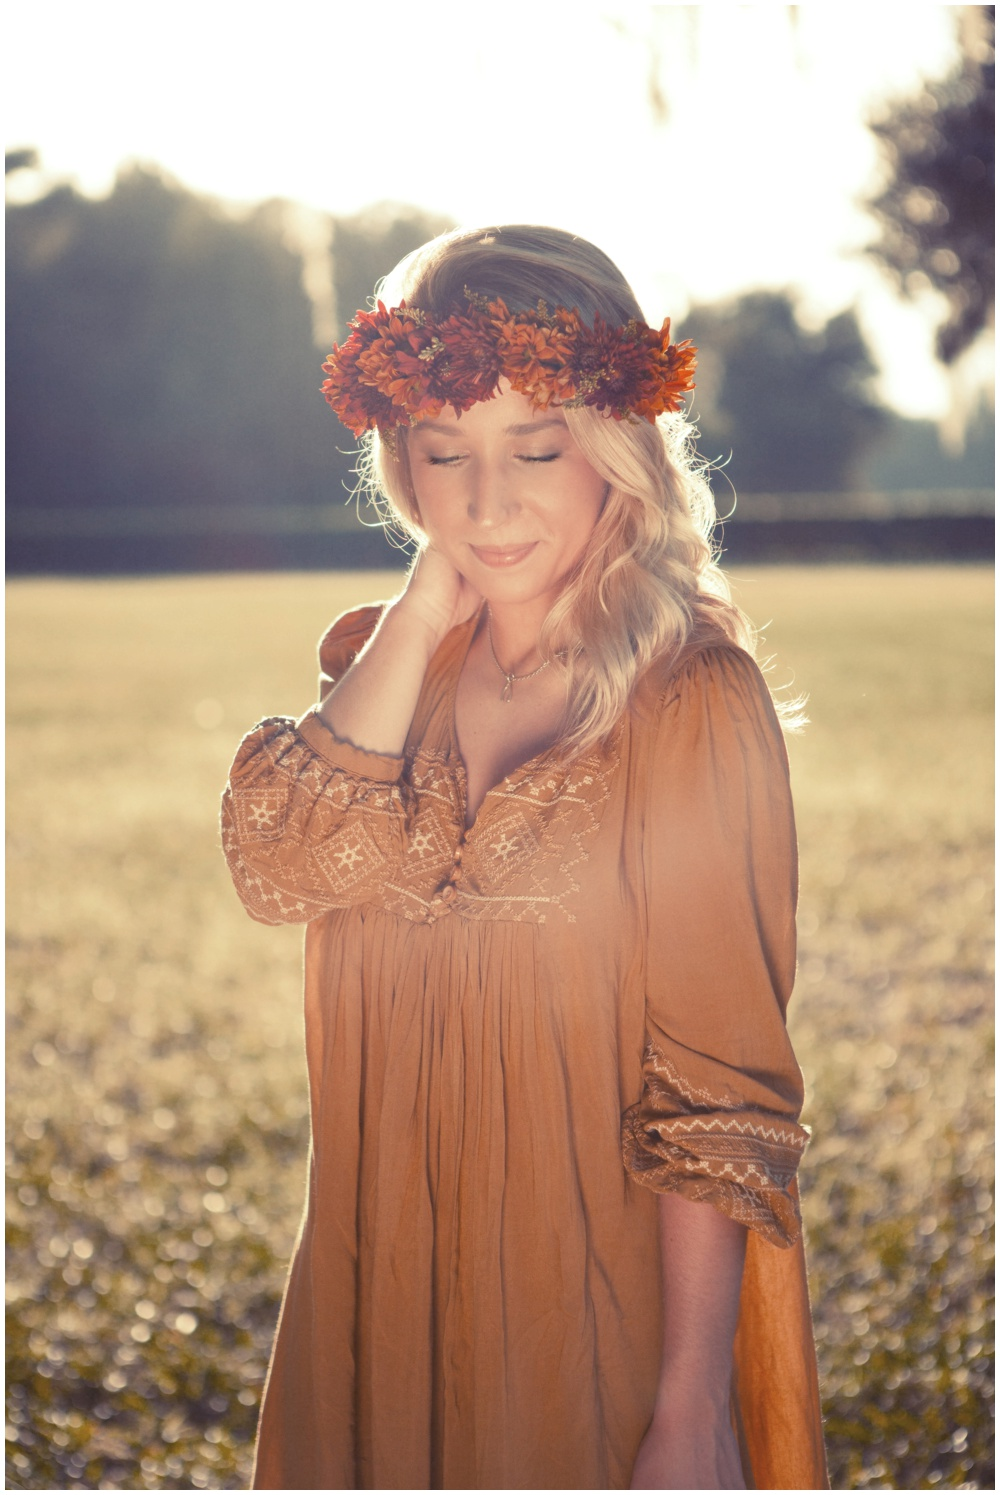 Bohemian Fashion Photo Shoot for Spriggs Laid Back Luxe ...